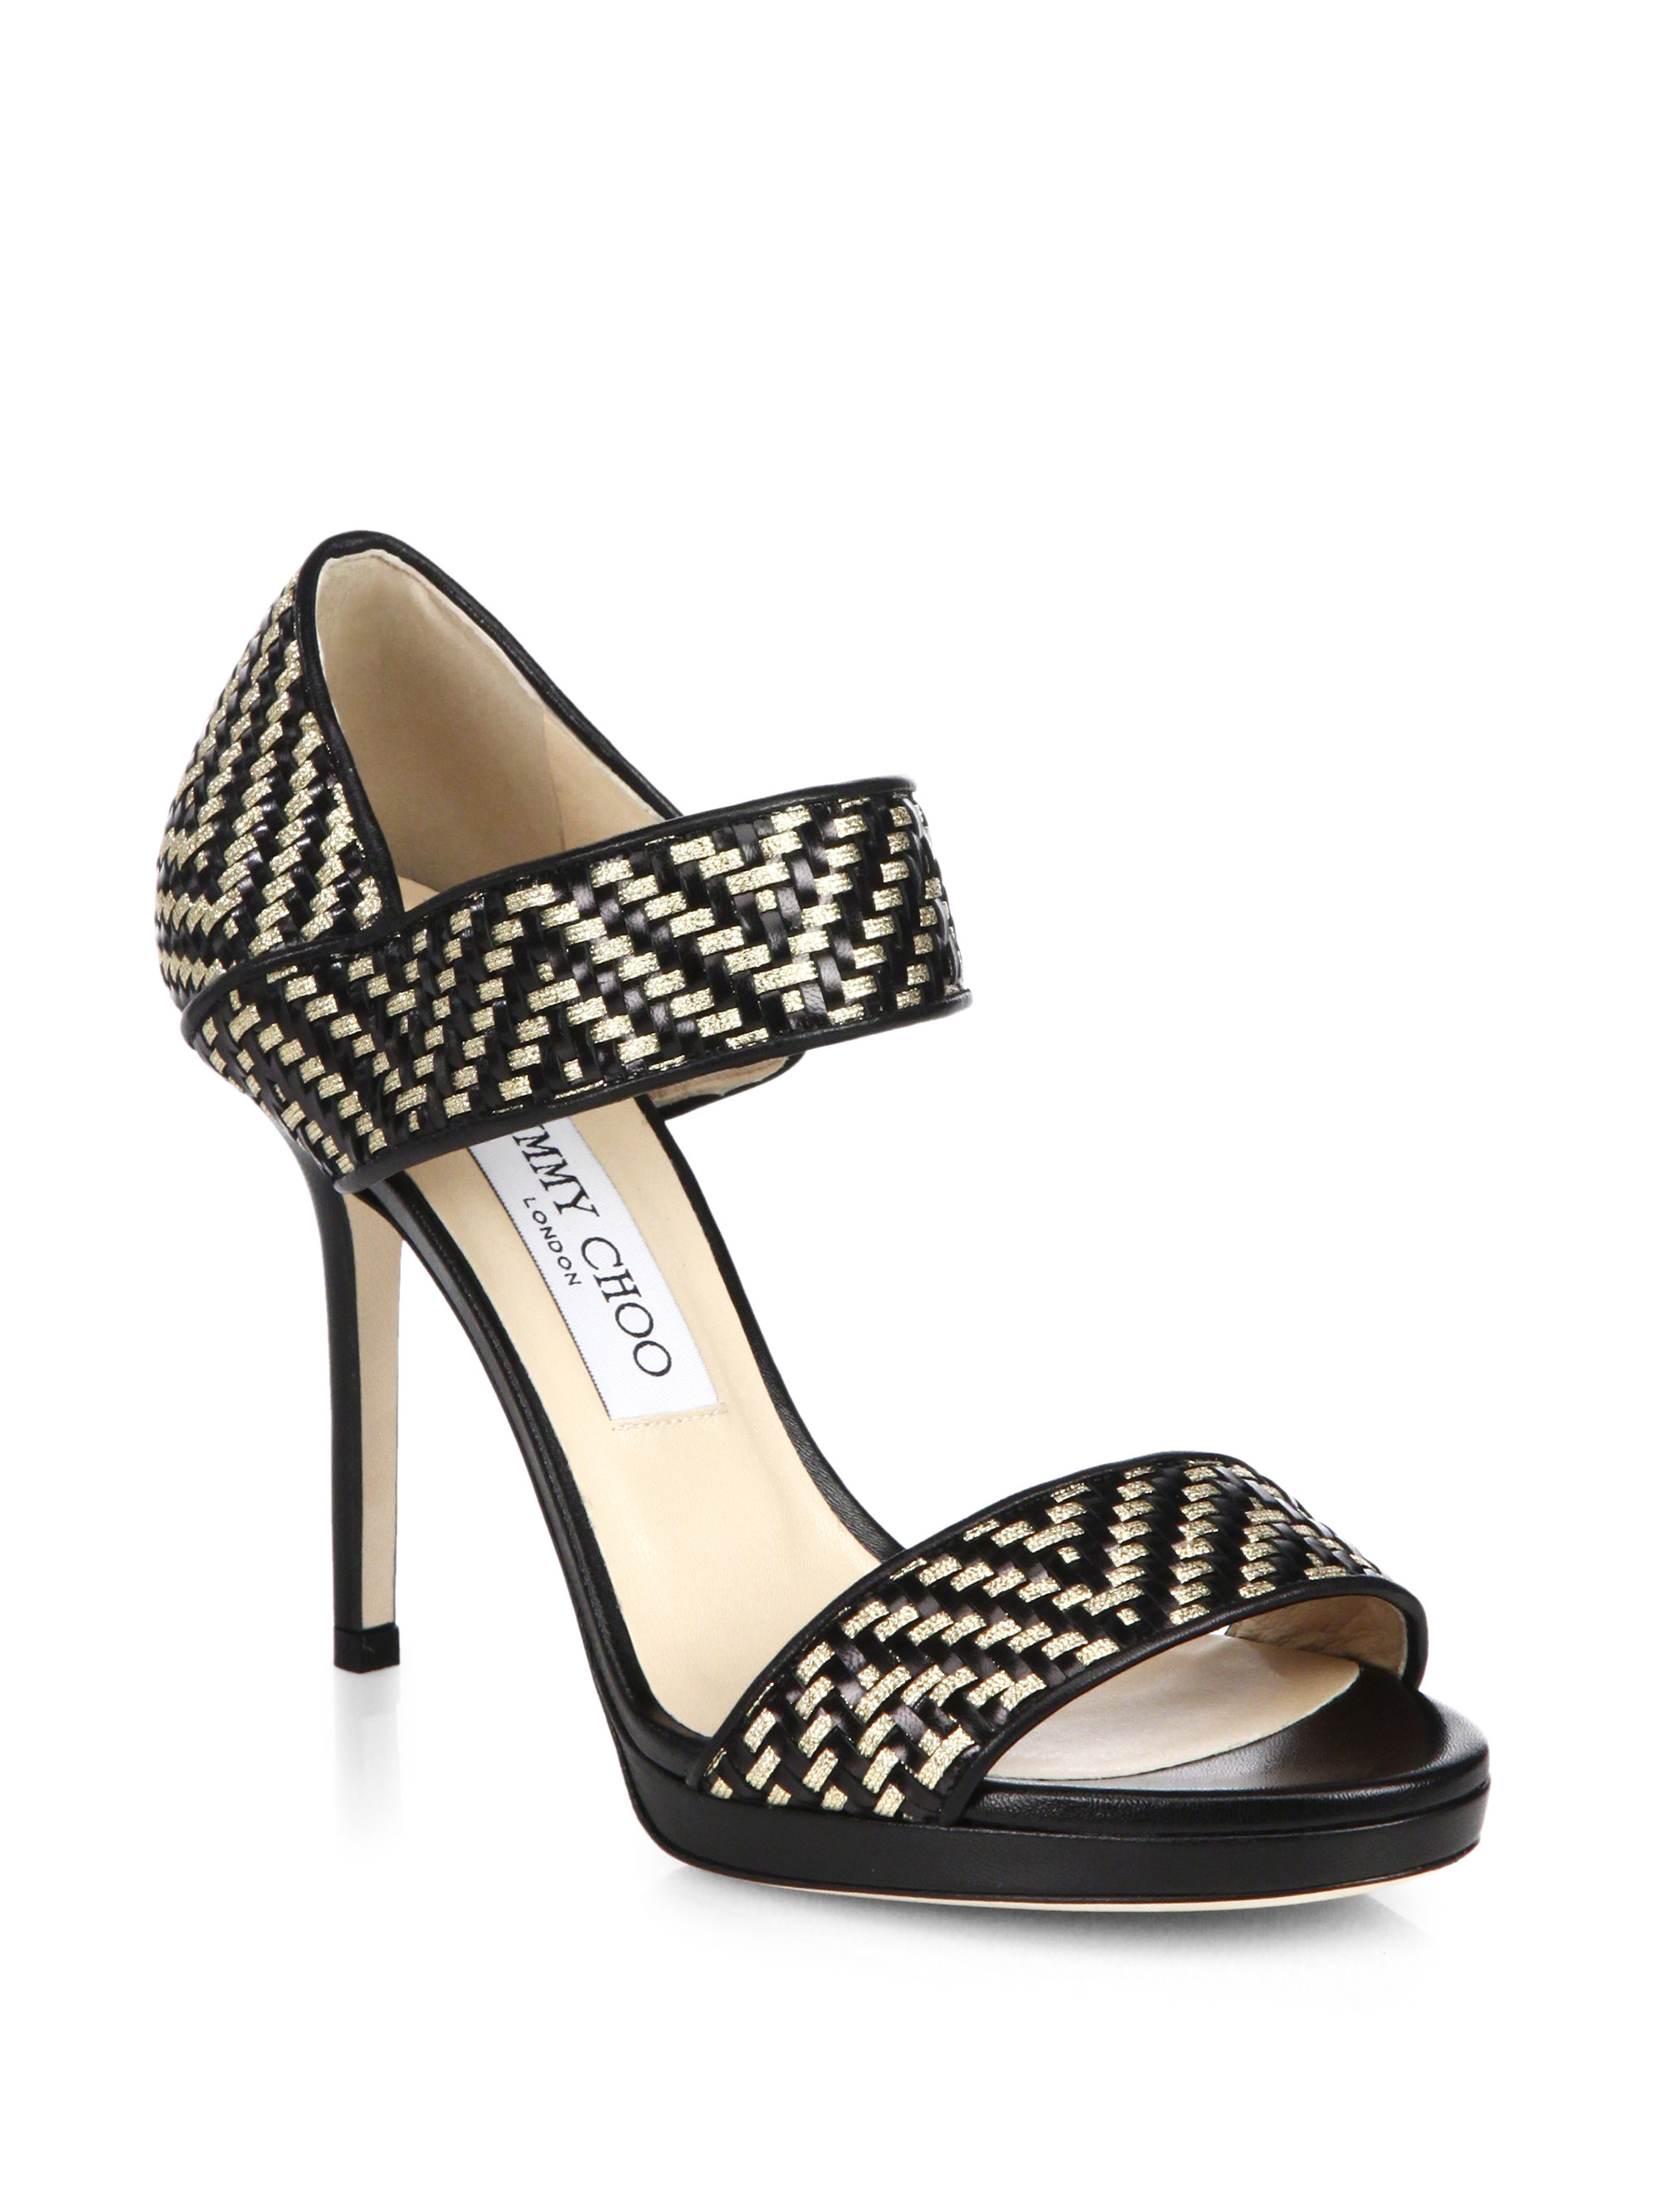 sale good selling really cheap online Jimmy Choo Metallic Patent Leather Sandals low cost cheap price big sale sale online buy cheap the cheapest EBOYsVYIuk